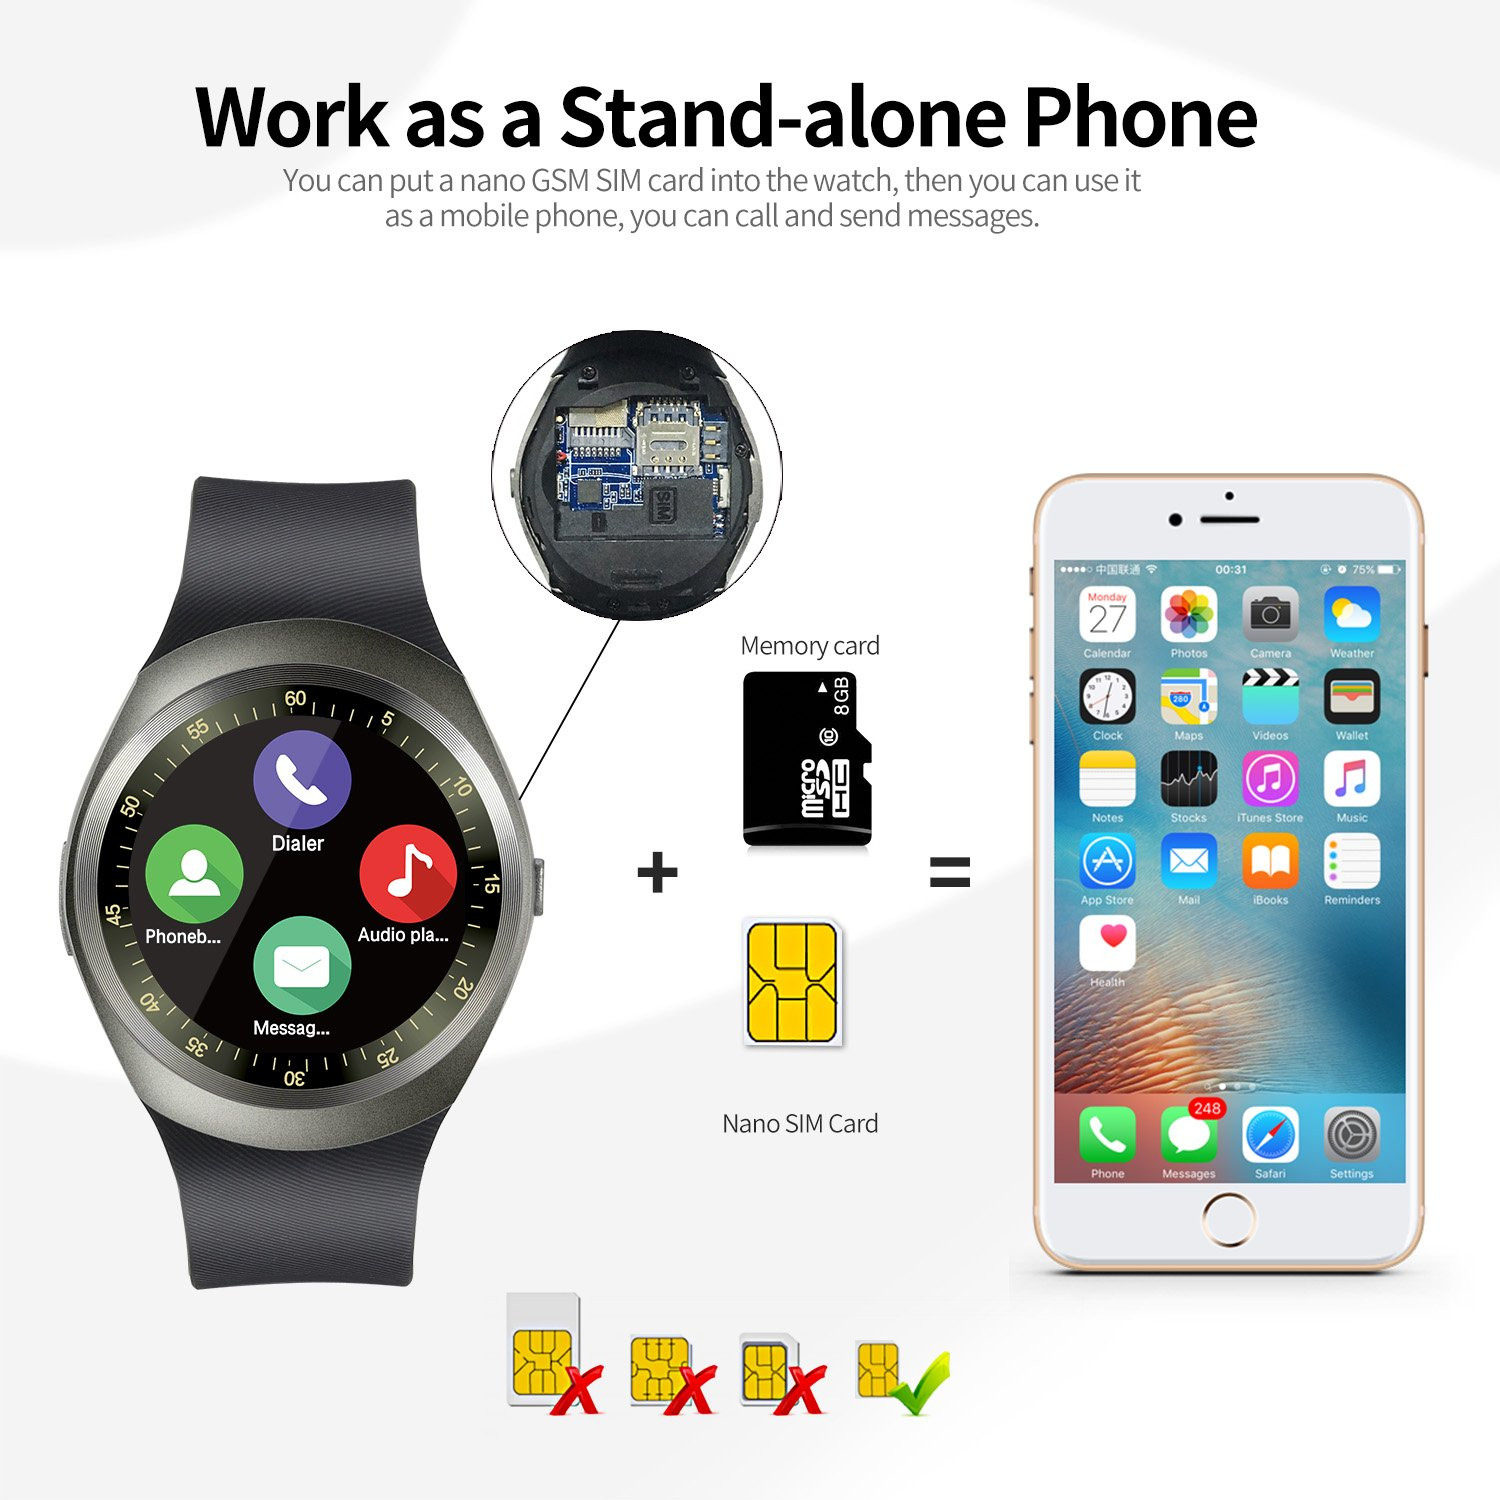 smartwatch watches on apple time watch lte s phone first mobile call with cellular hands